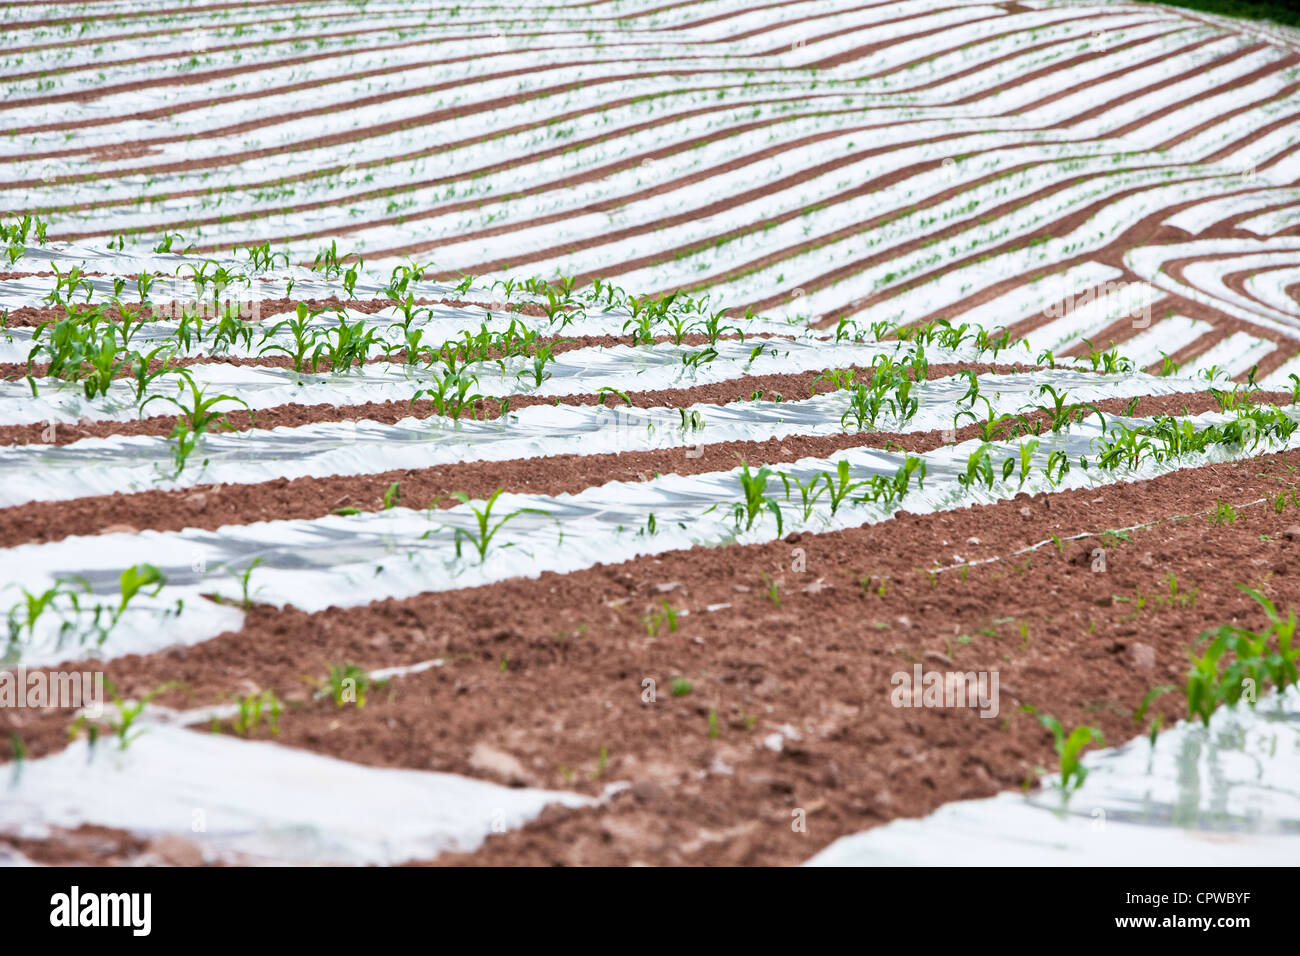 Corn on the Cob being grown under plastic sheeting, Worcestershire, England, UK - Stock Image